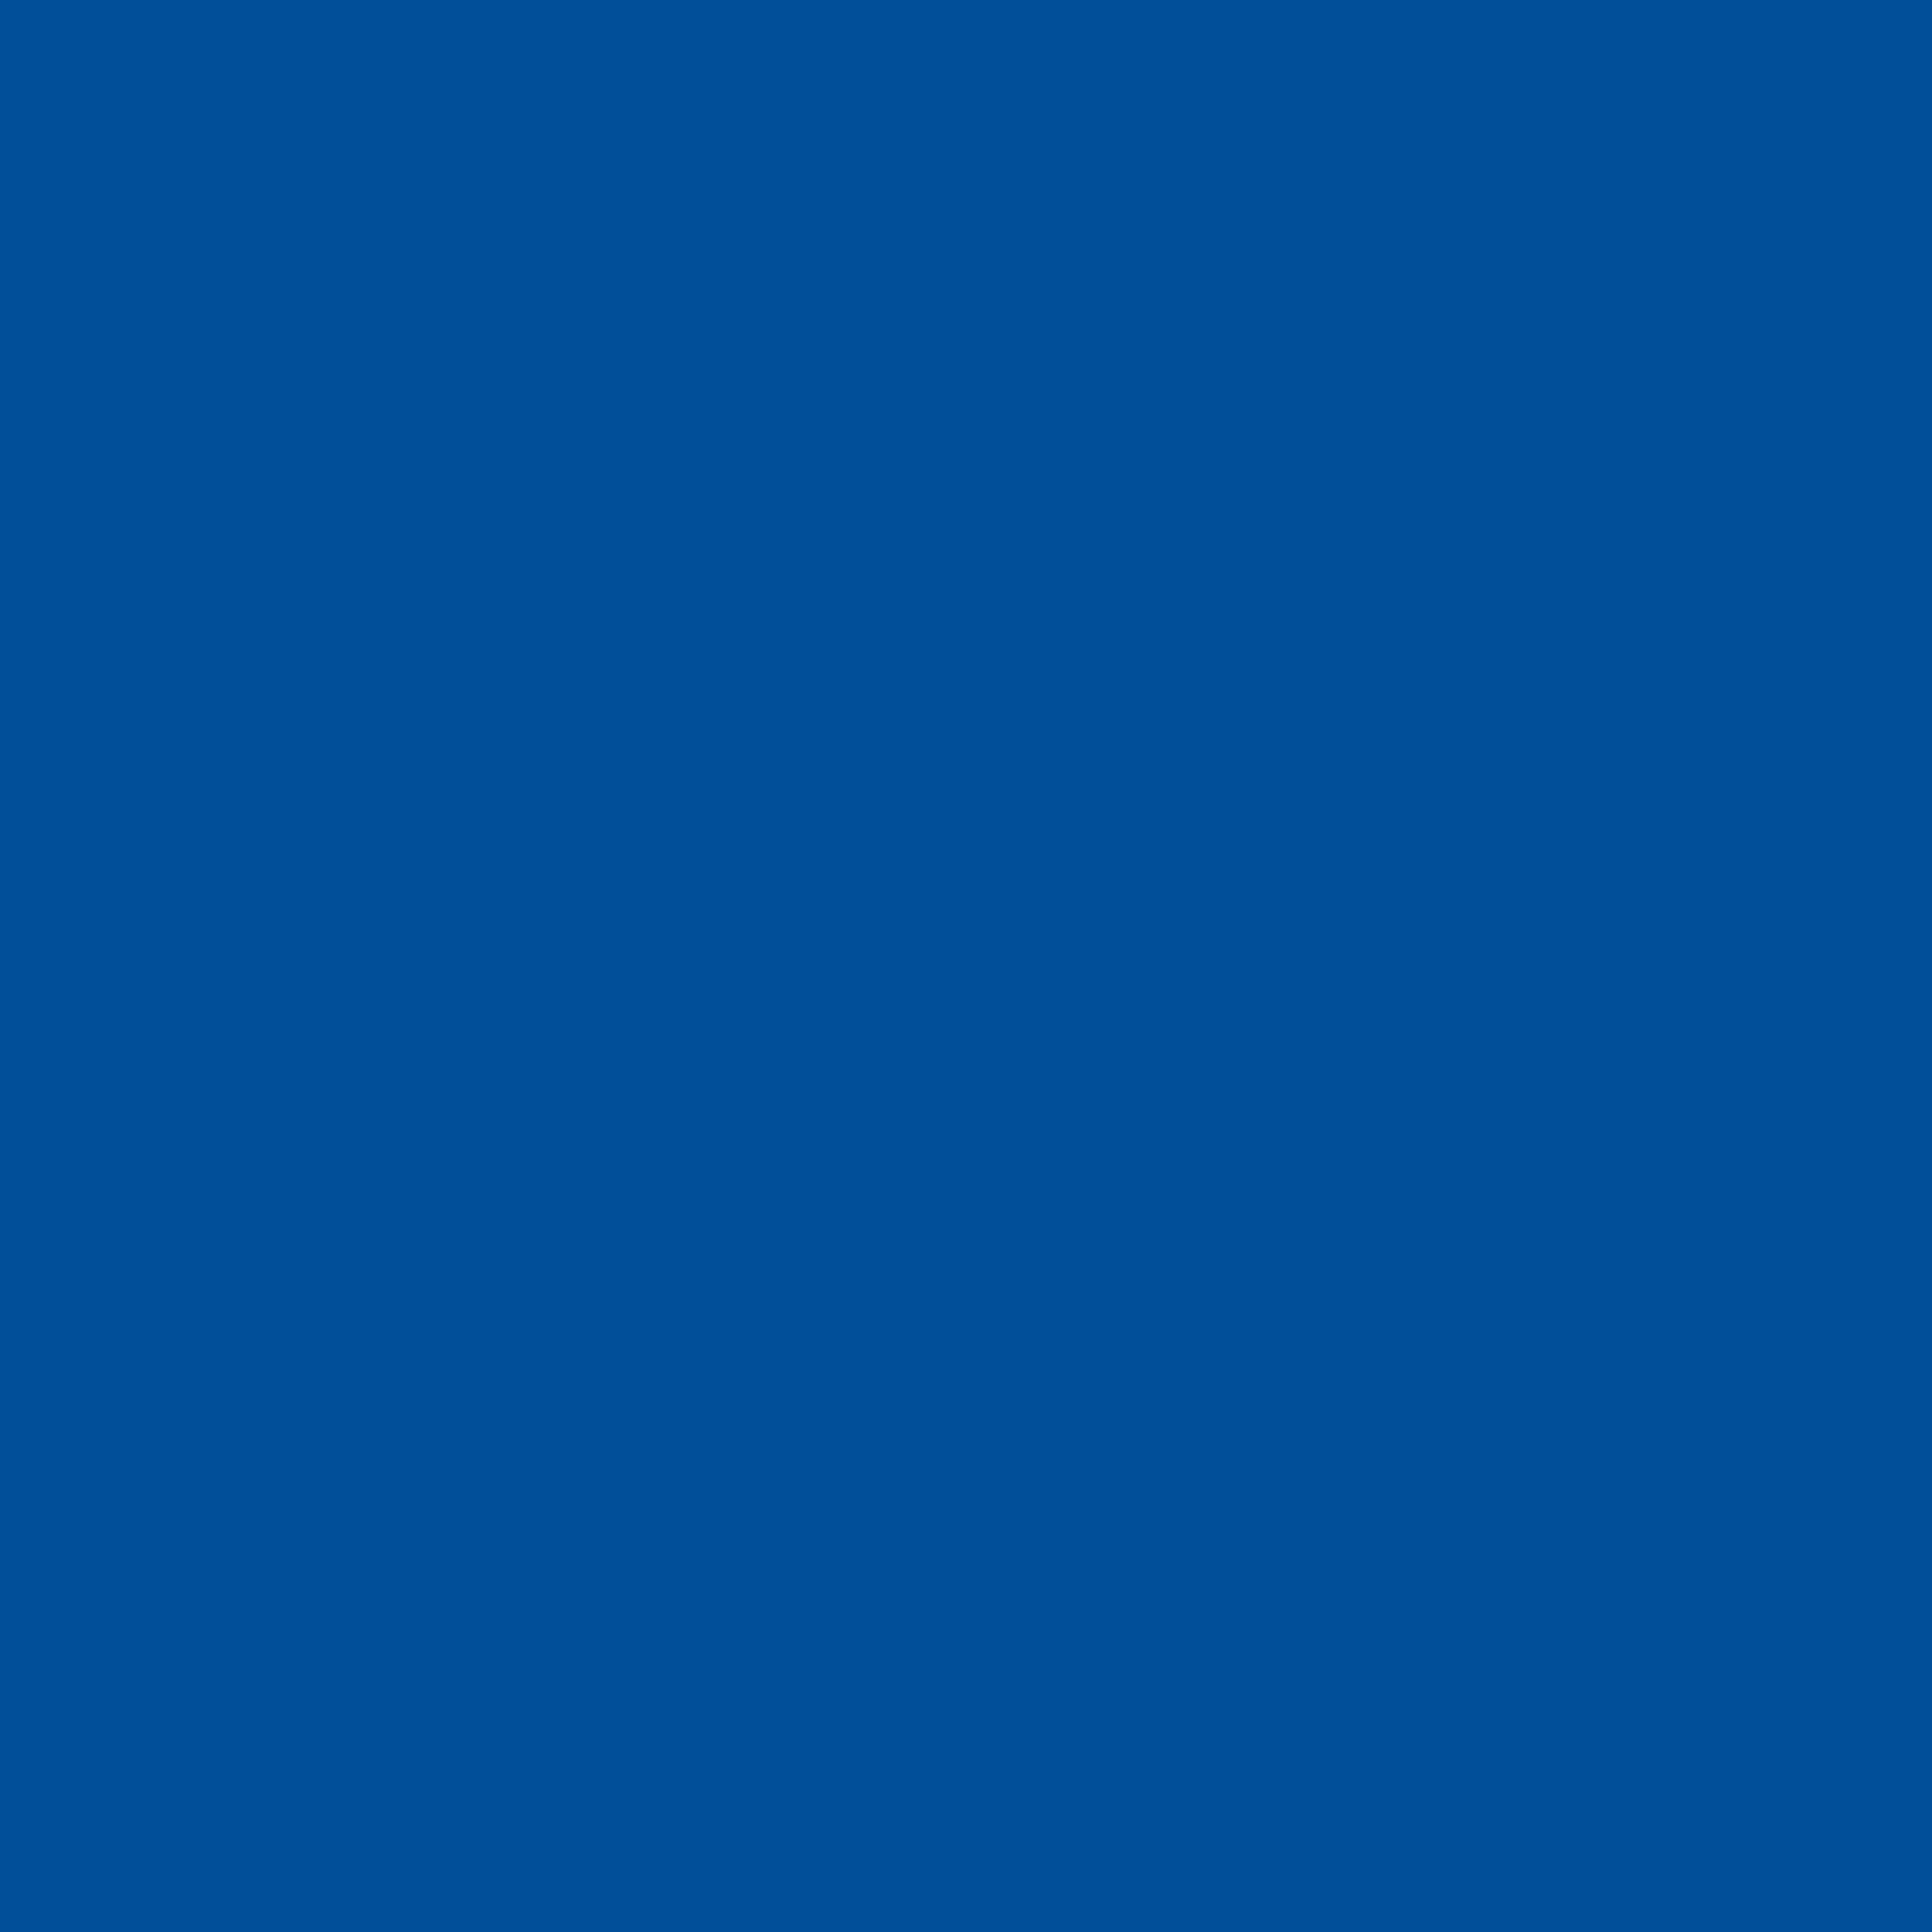 2732x2732 USAFA Blue Solid Color Background